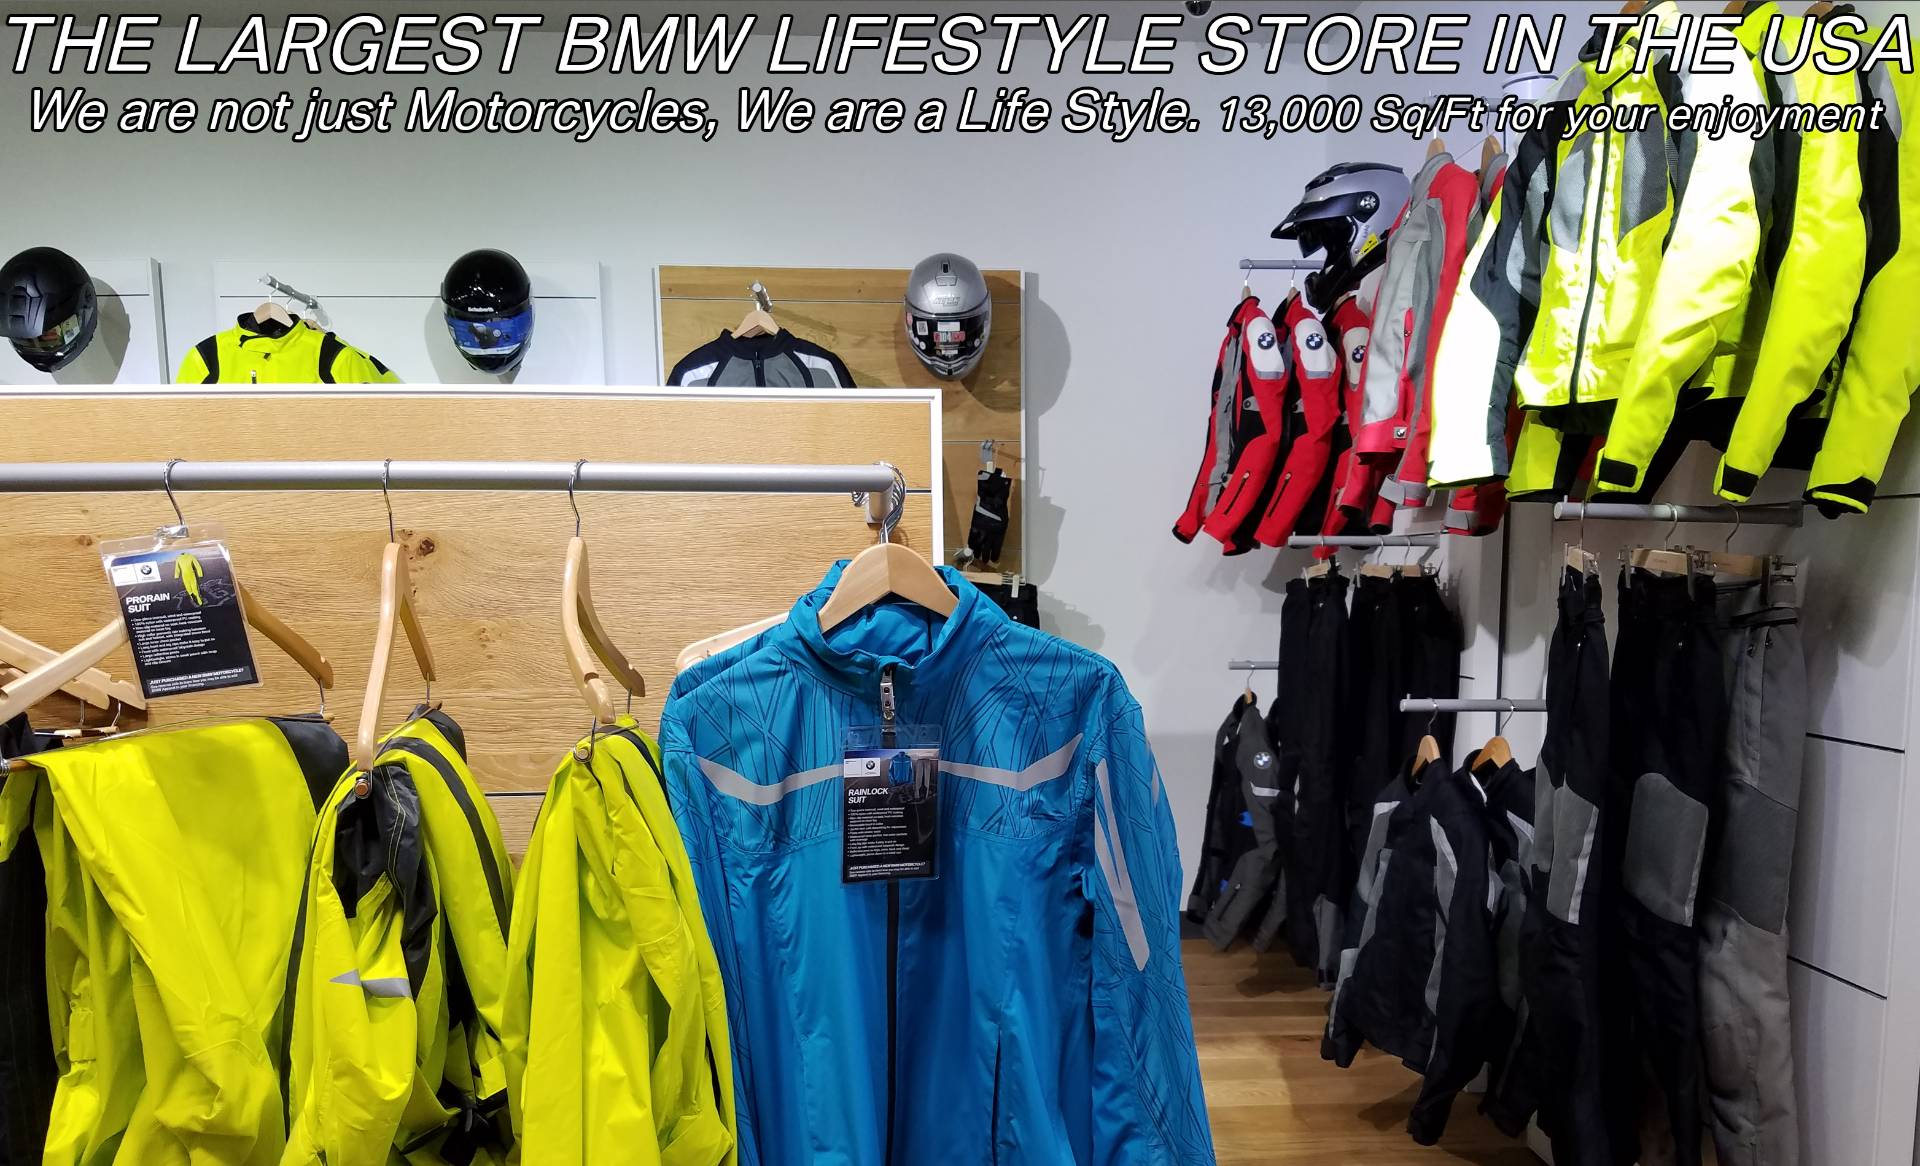 New 2019 BMW C 400 X for sale, BMW C 400X for sale, BMW Scooter, new BMW Scooter, C400X, BMW Motorcycles of Miami, Motorcycles of Miami, Motorcycles Miami, New Motorcycles, Used Motorcycles, pre-owned. #BMWMotorcyclesOfMiami #MotorcyclesOfMiami #MotorcyclesMiami - Photo 31